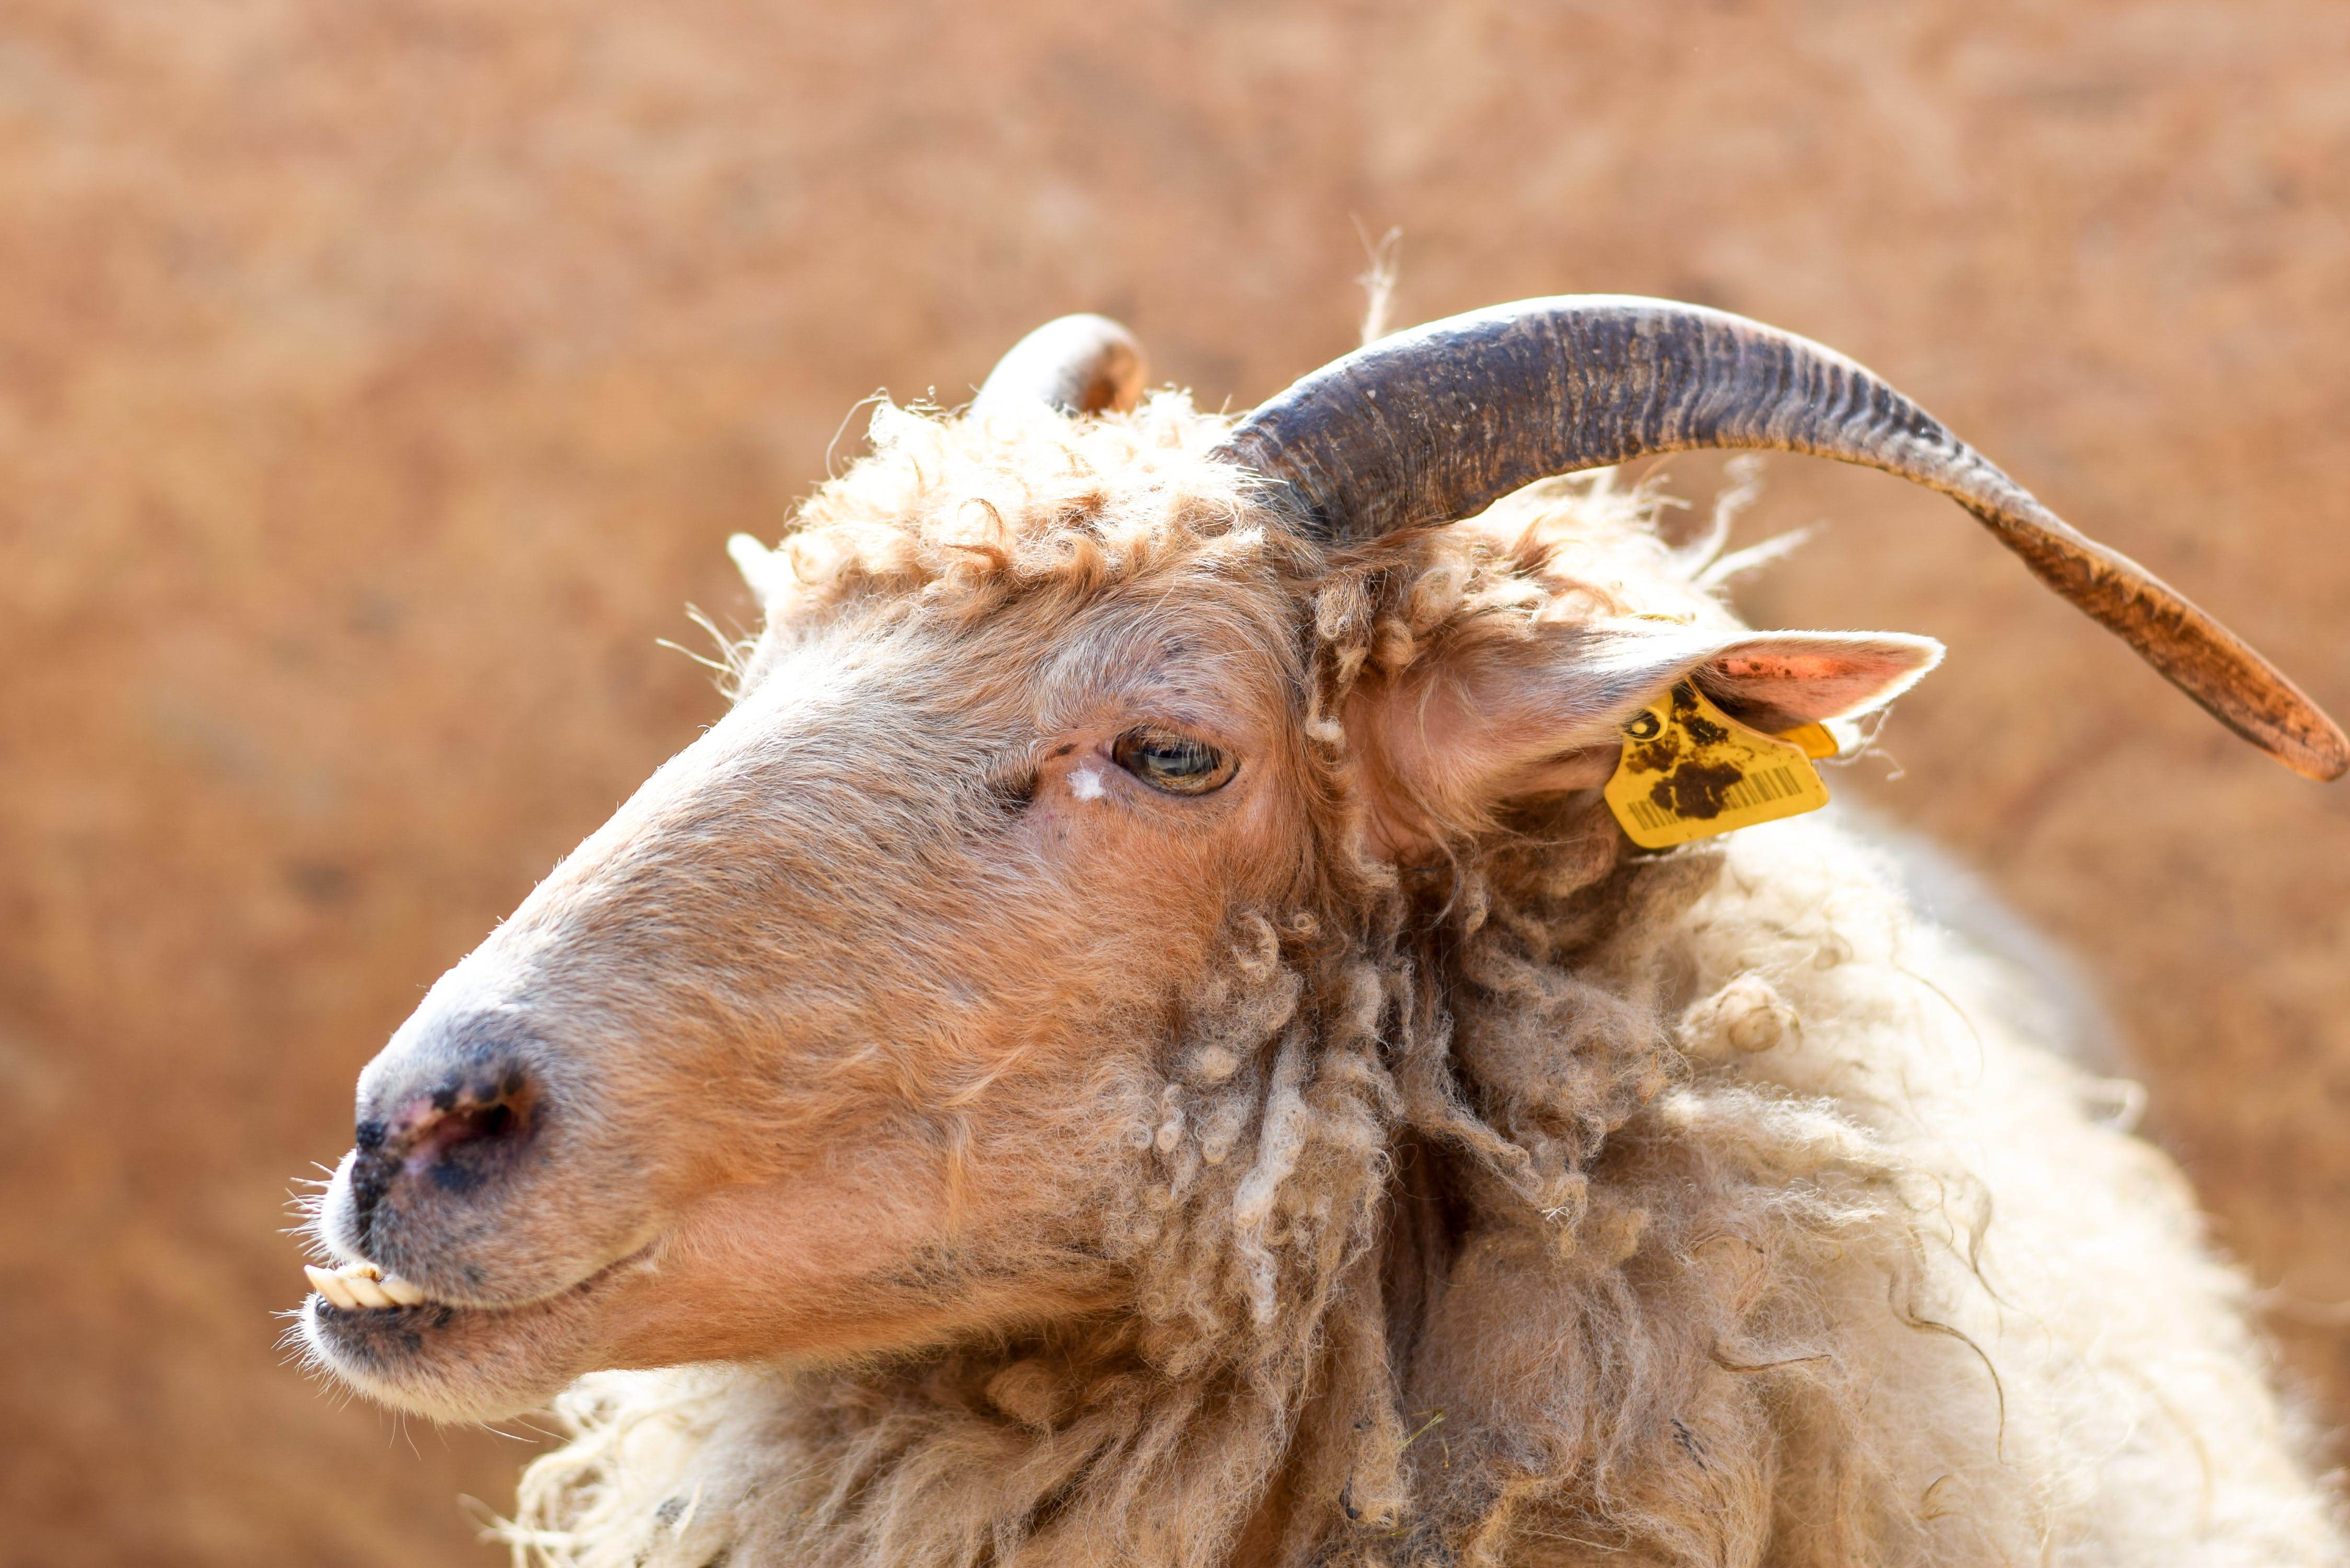 Brown Sheep With Yellow Tag on Ear